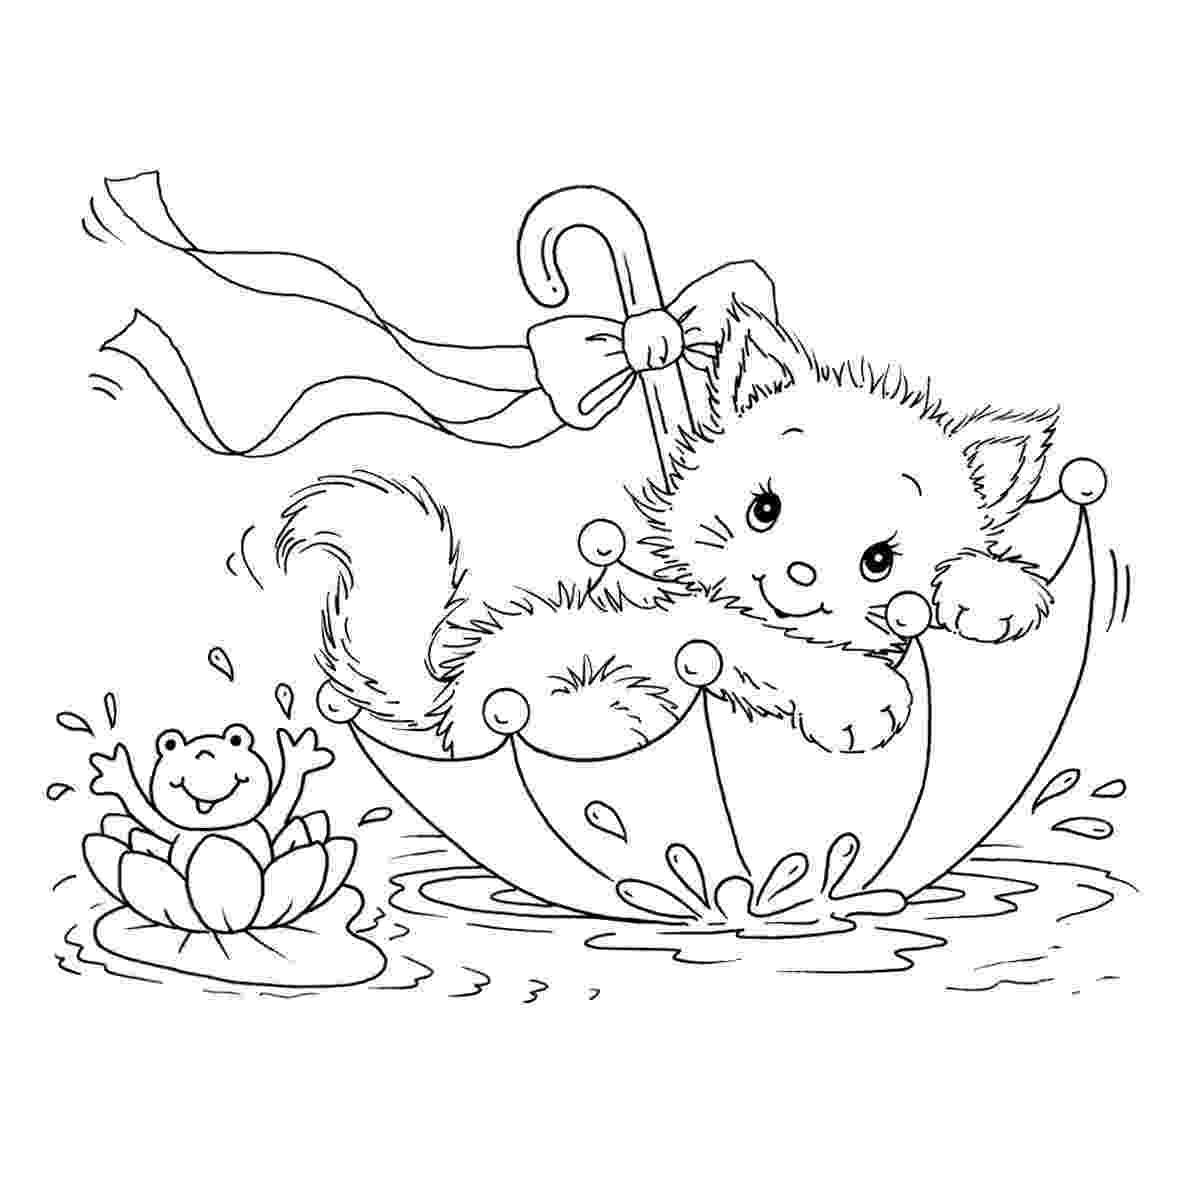 coloring pictures of kittens free printable cat coloring pages for kids pictures of coloring kittens